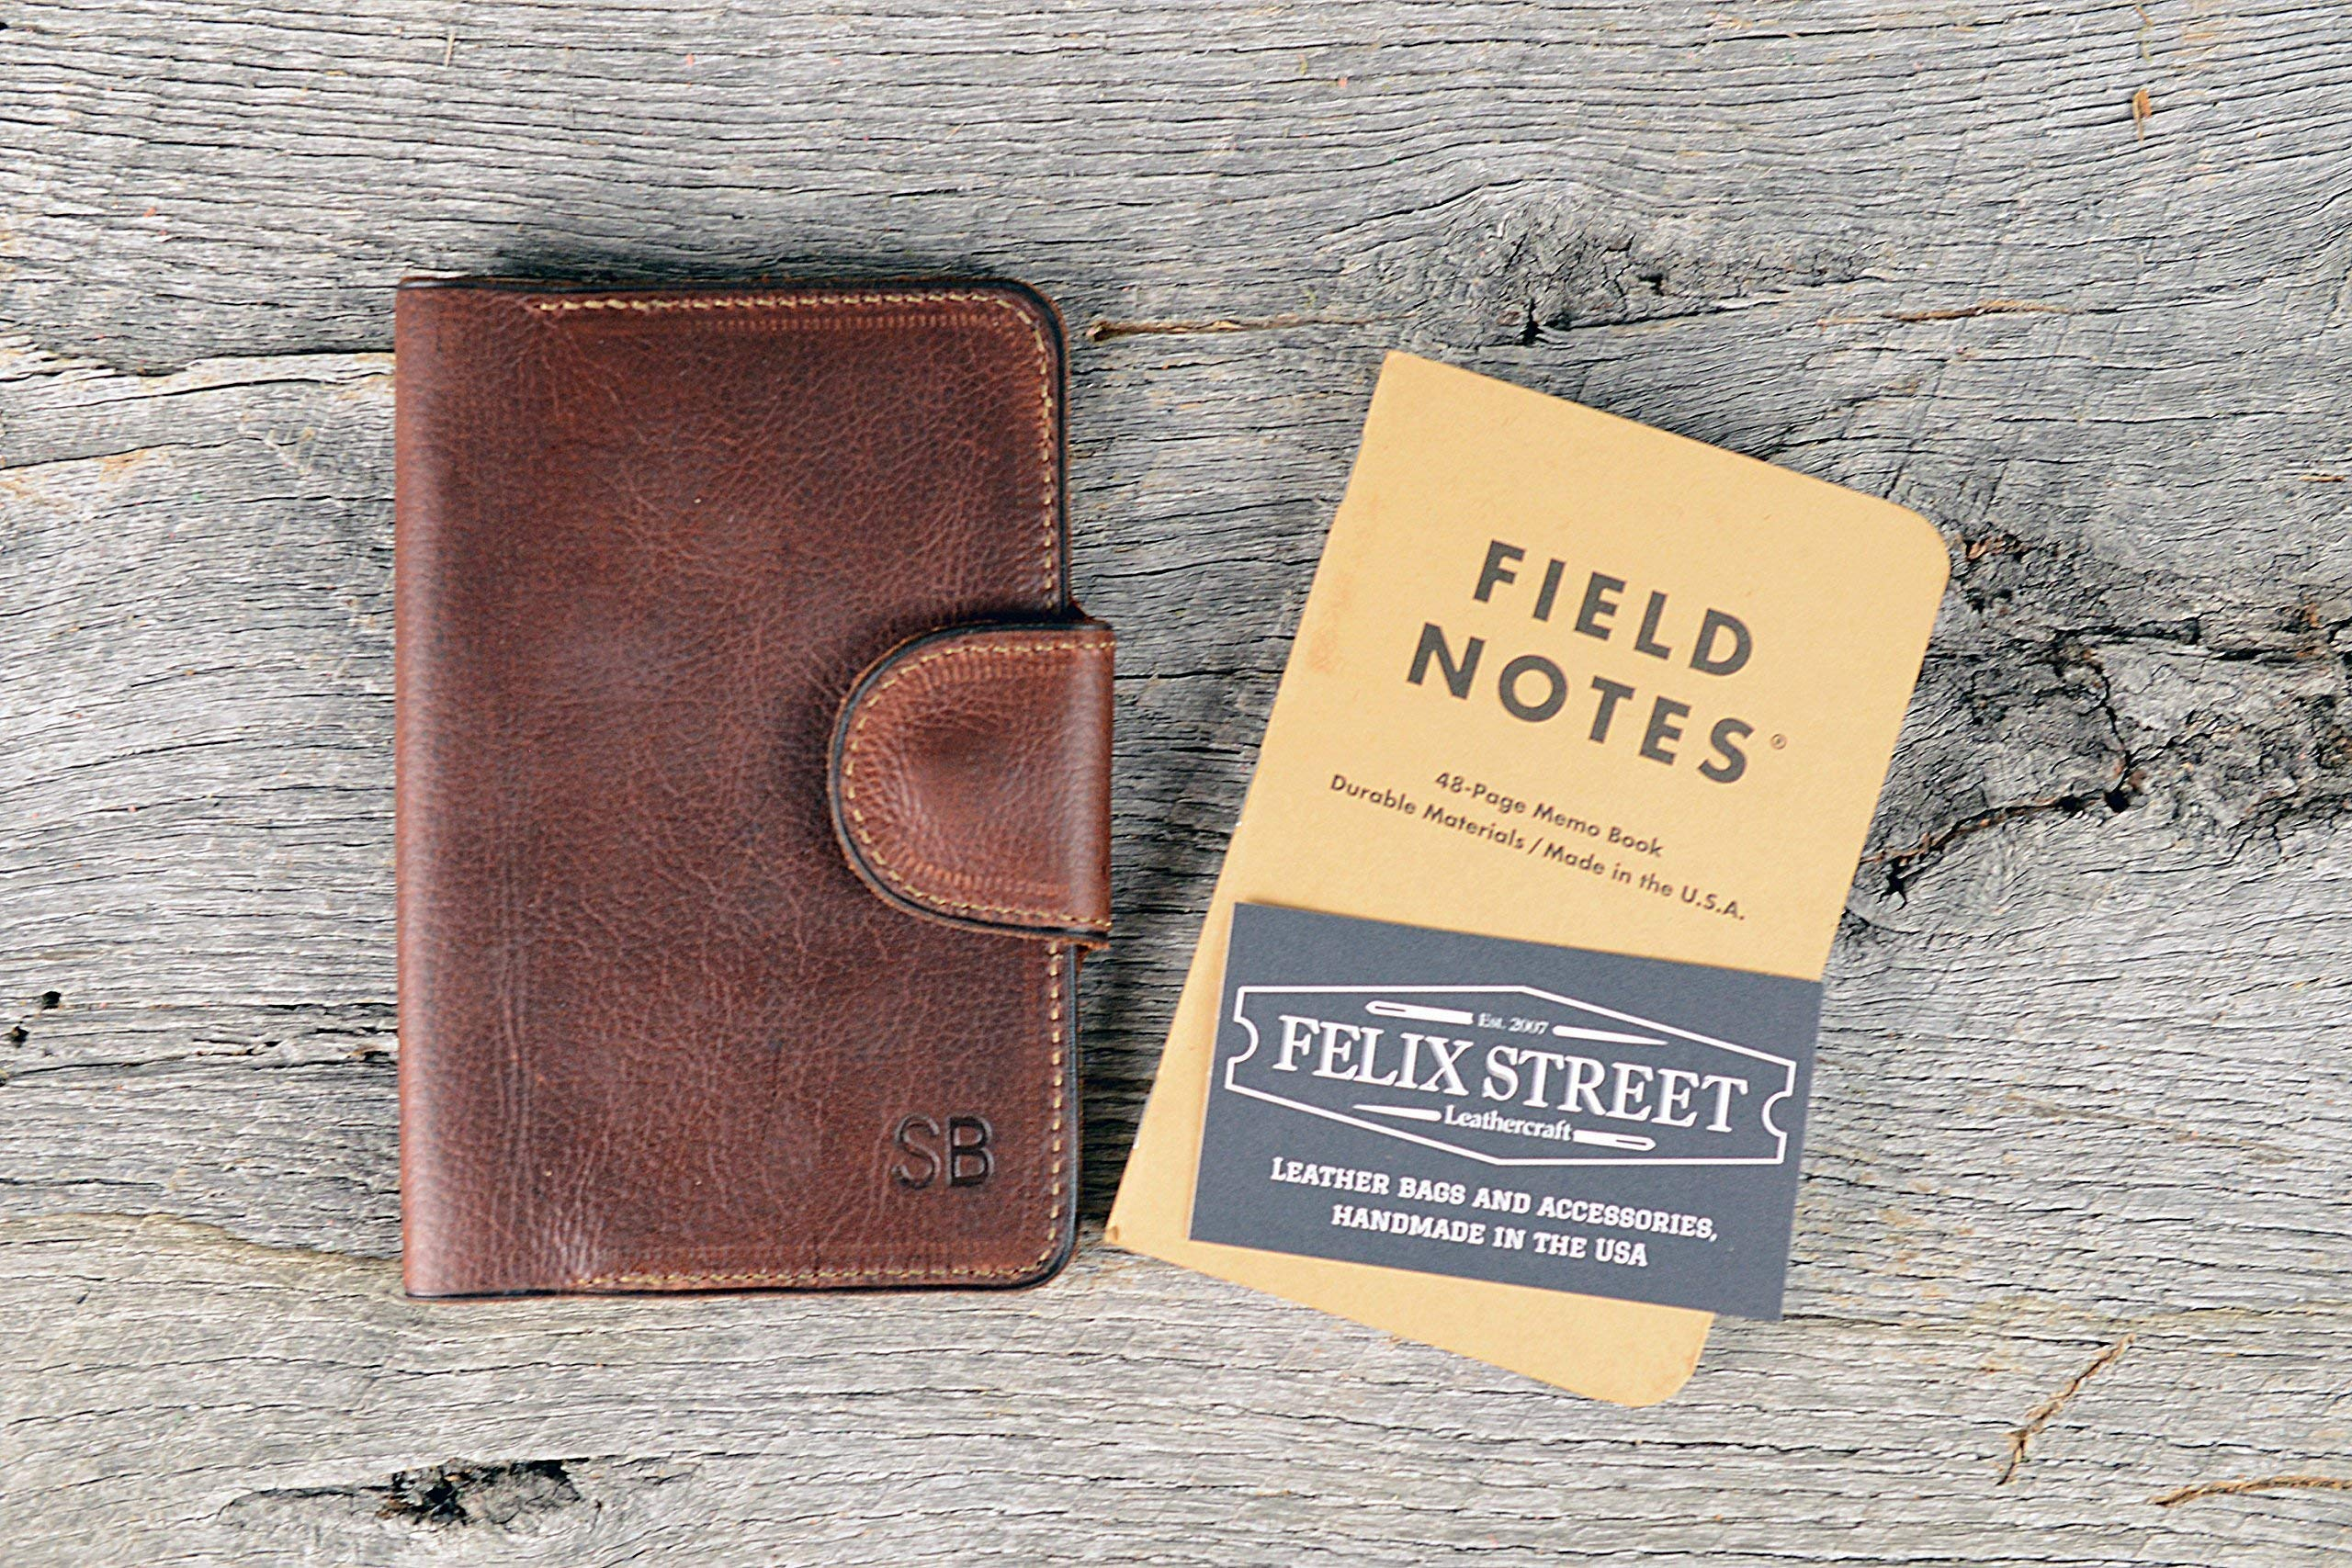 Arizona Leather Field Notes Cover | Monogram Memo Book With Personalized Initials, Pen Holder, Card Slot Field Notes, Moleskin, Journal, Groomsmen Gift For Father's Day | Leather Anniversary Gift